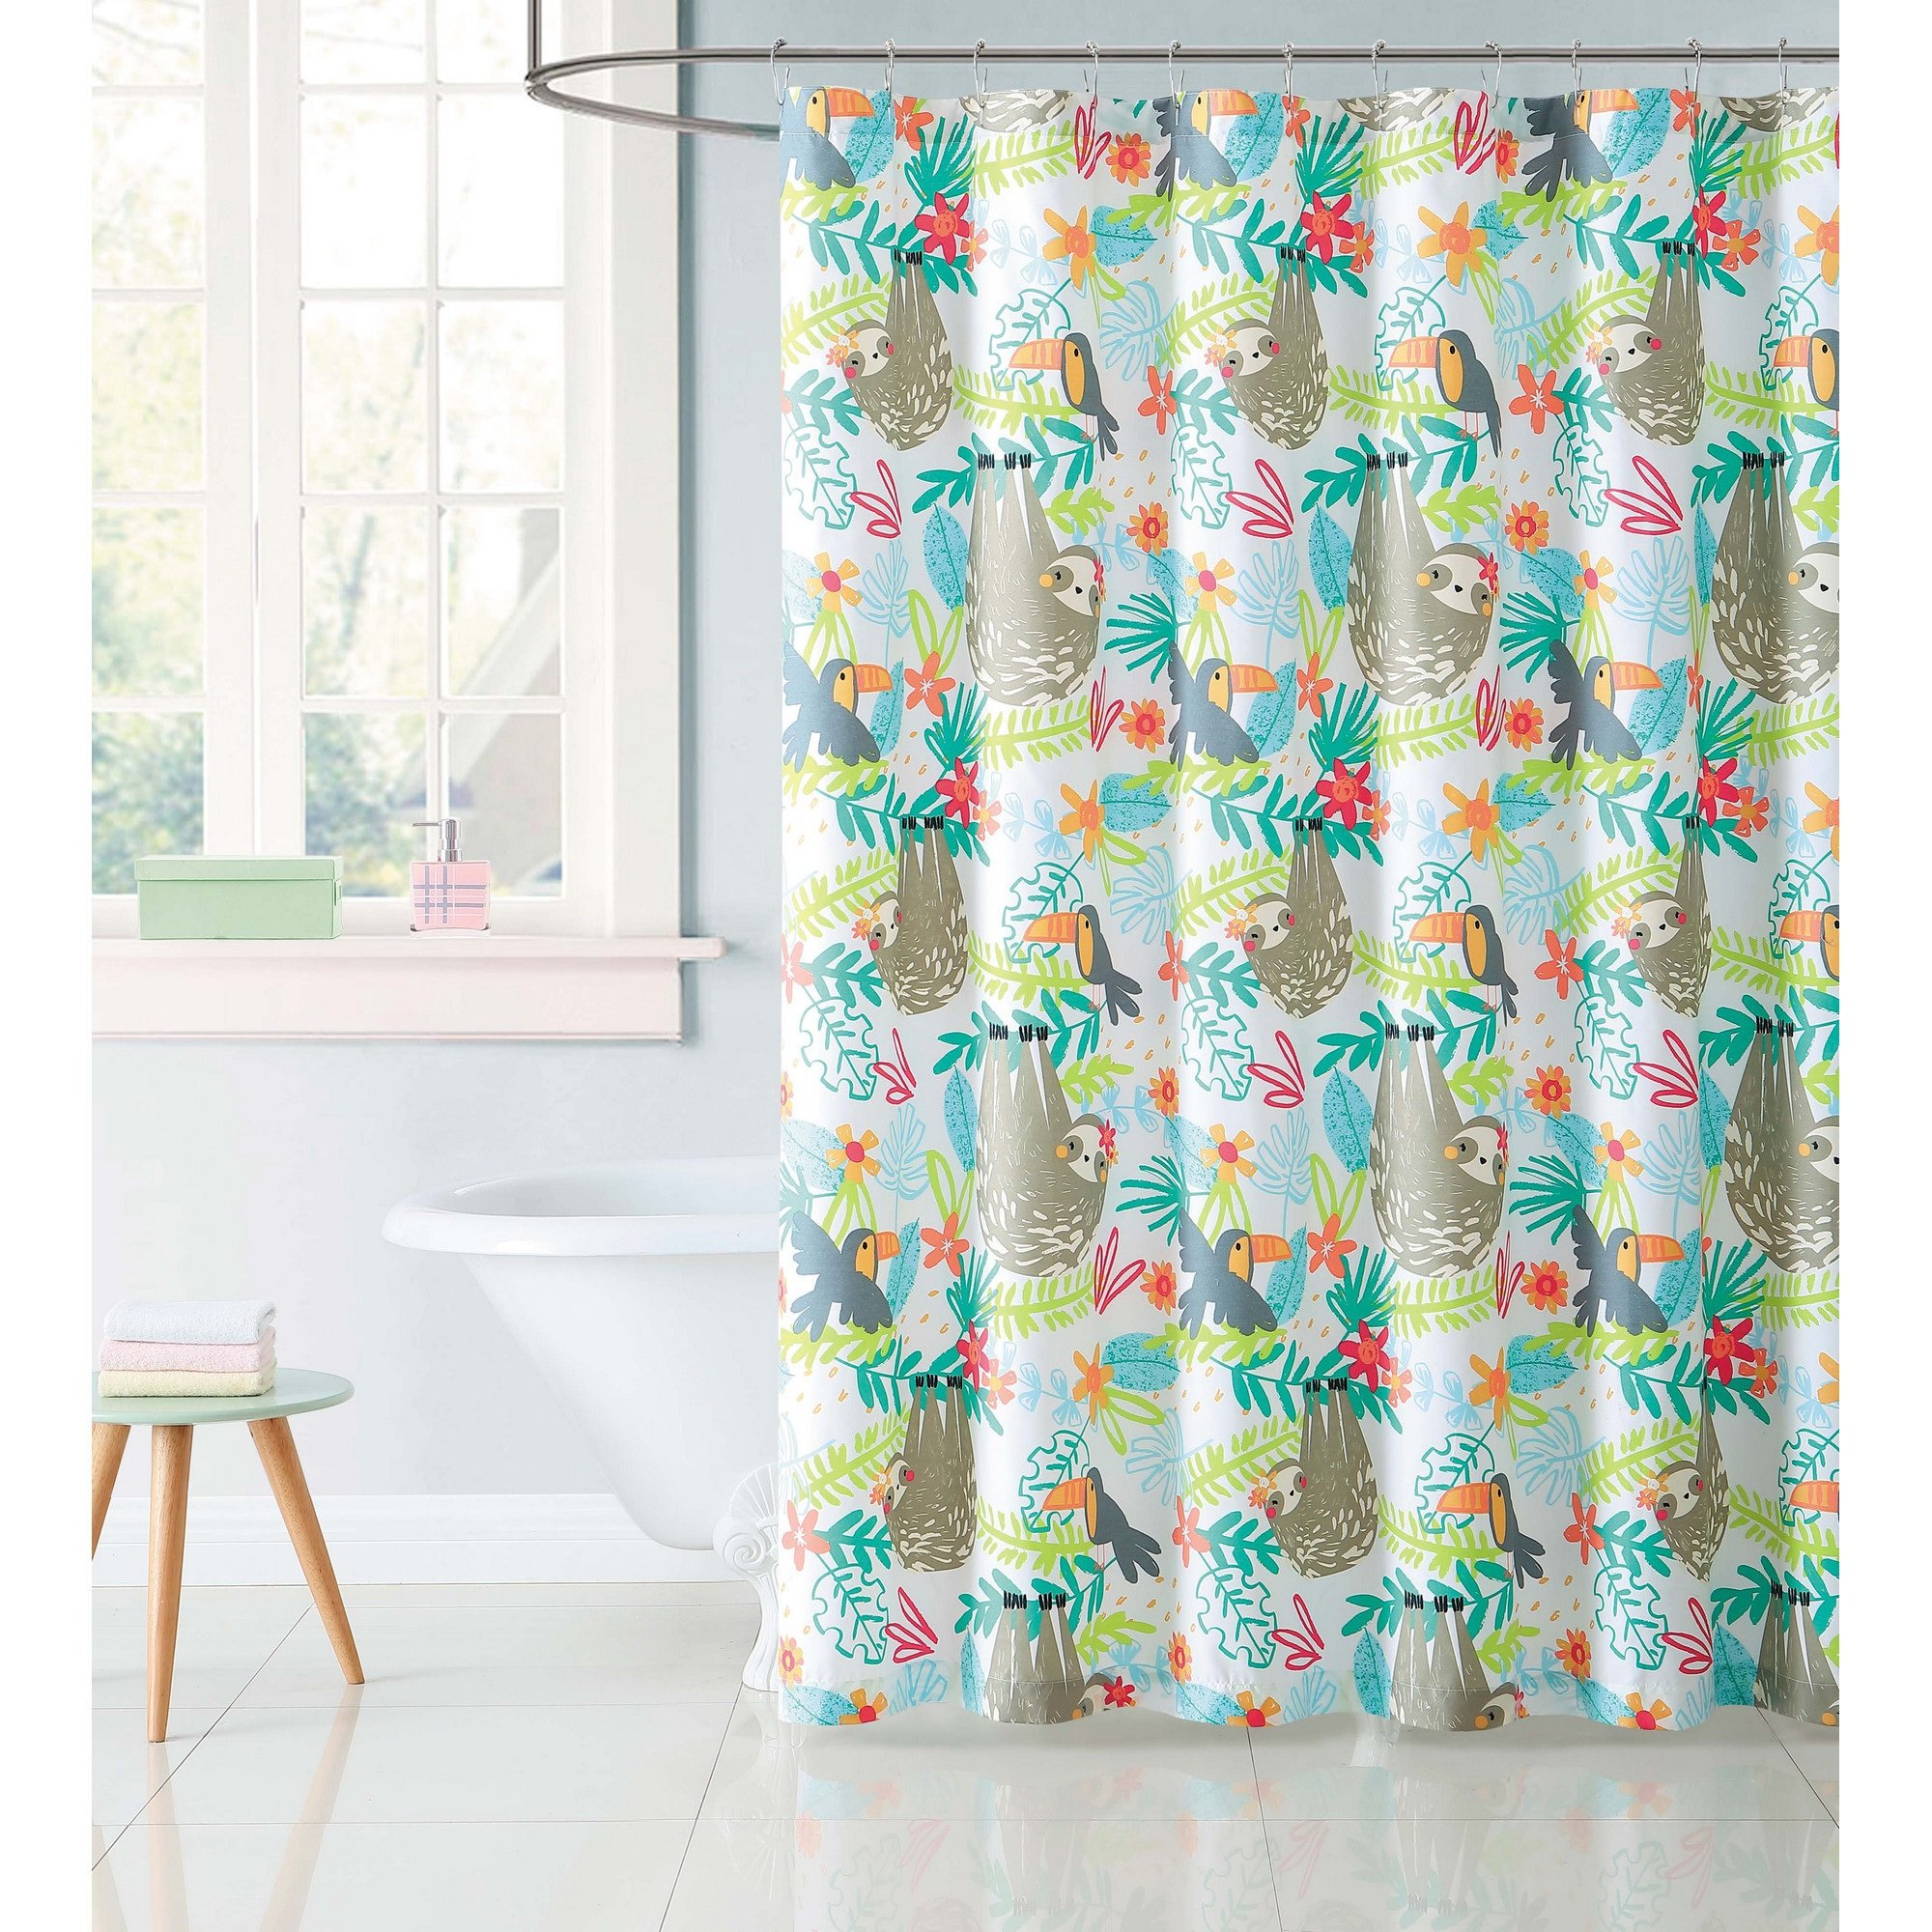 Soft and Cute Laura Hart Kids Hanging Out 72'' x 72'' Shower Curtain,Blue, Red, Green,Relax as Sloths Dangle From the Trees in this Fun Animal Print,Perfect for Your Kids Room